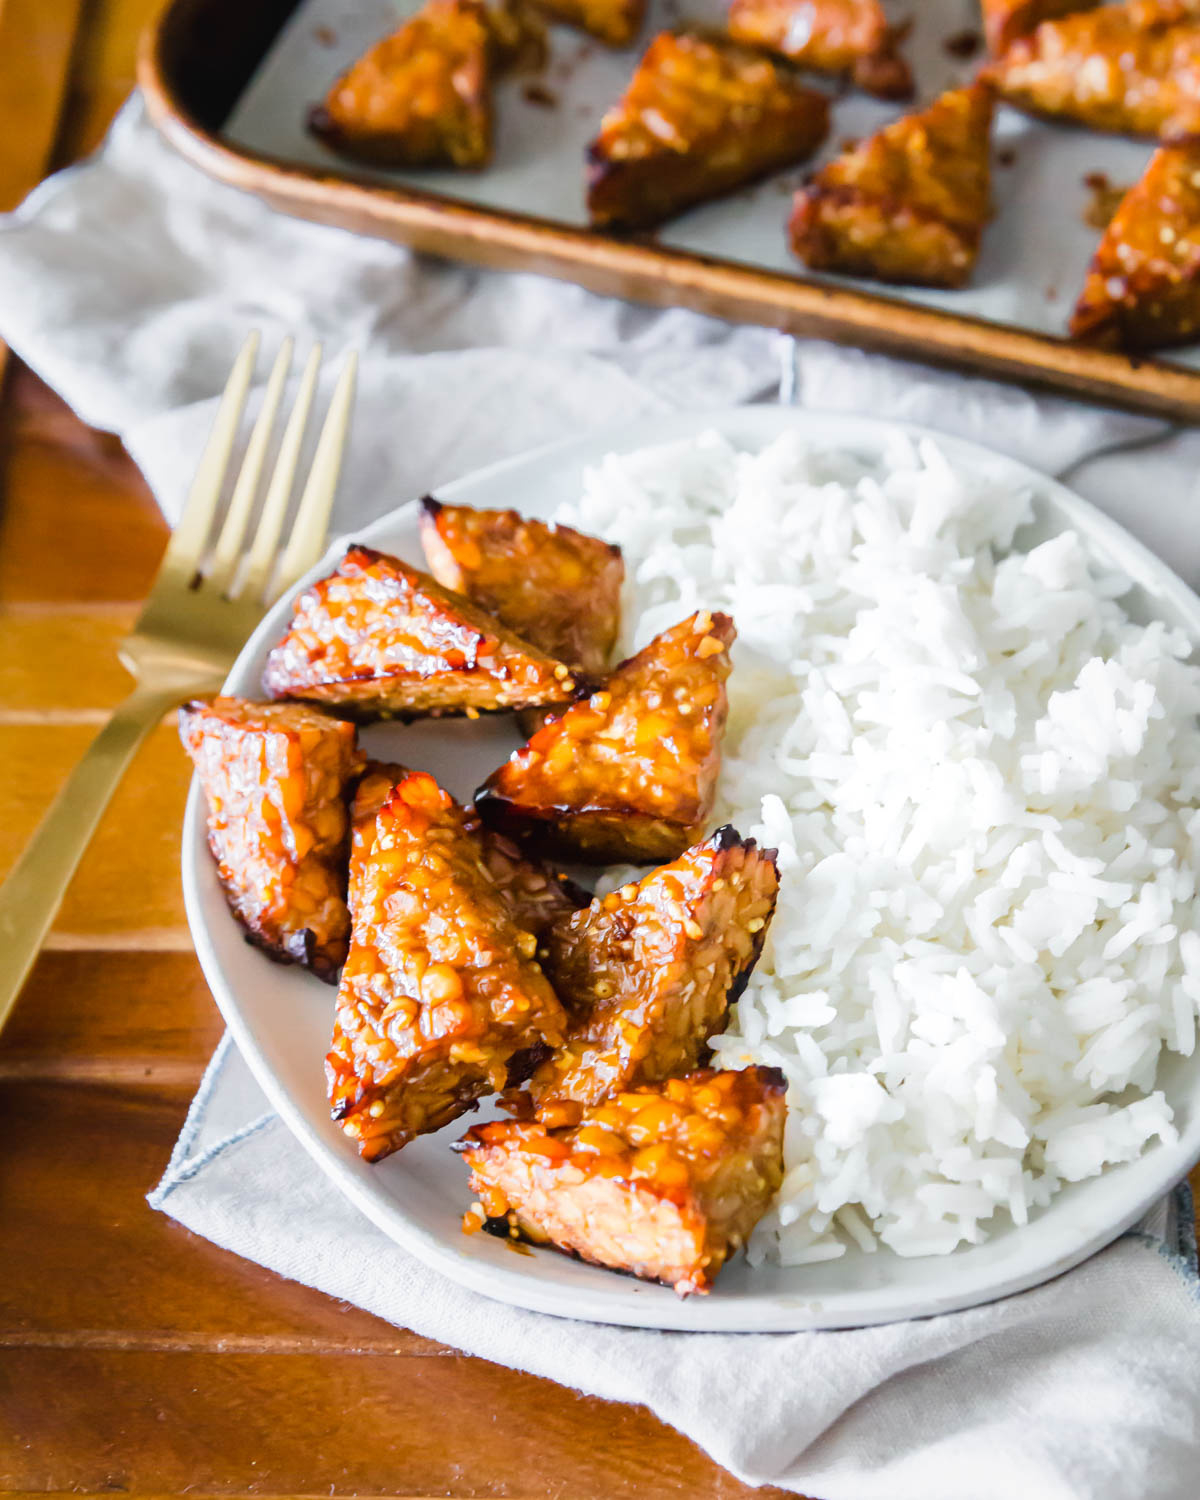 Easy baked tempeh with a simple 5 ingredient marinade.